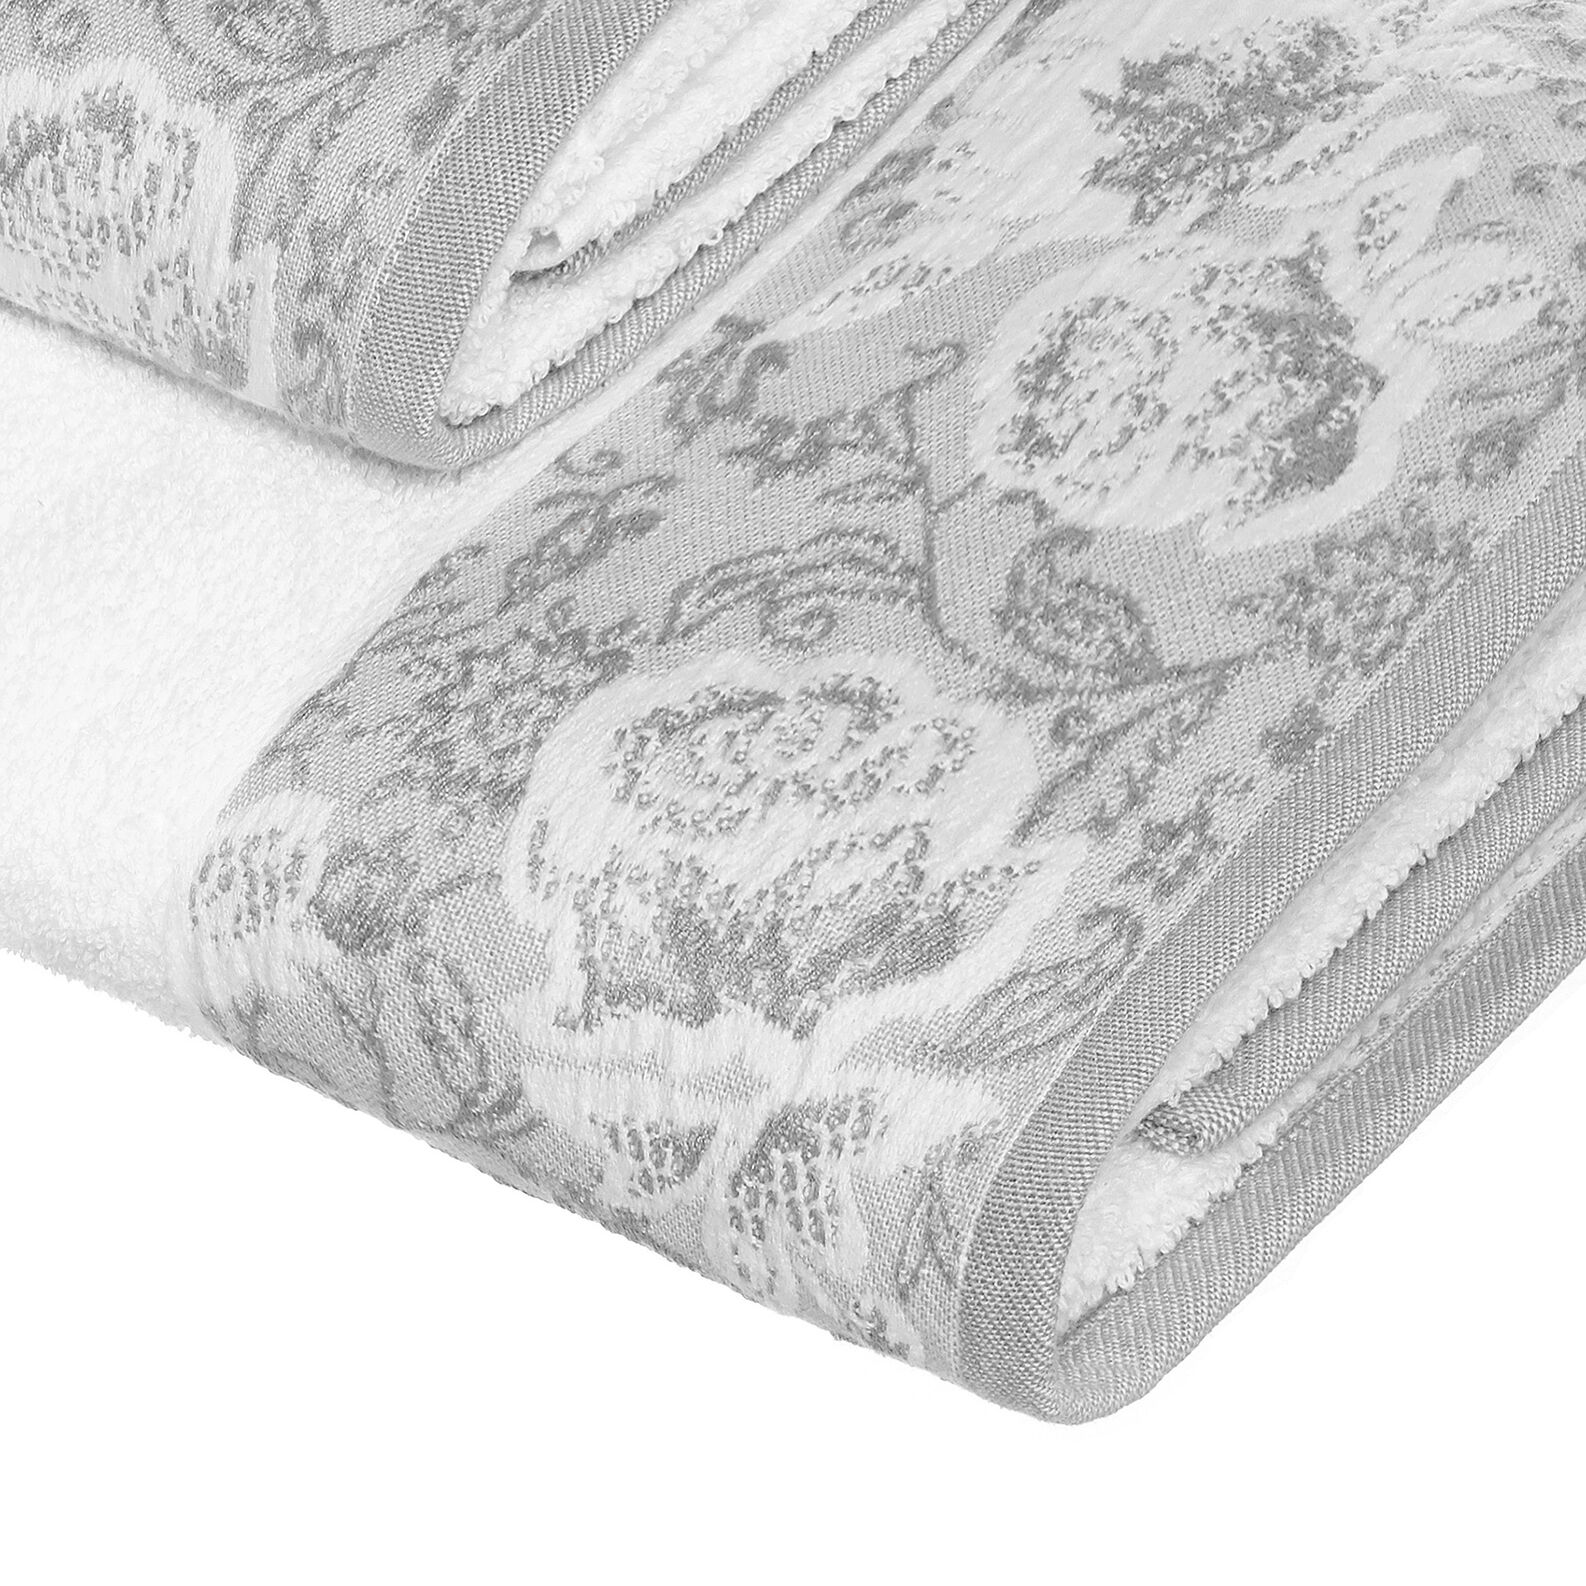 Portofino 100% cotton towel with jacquard edging